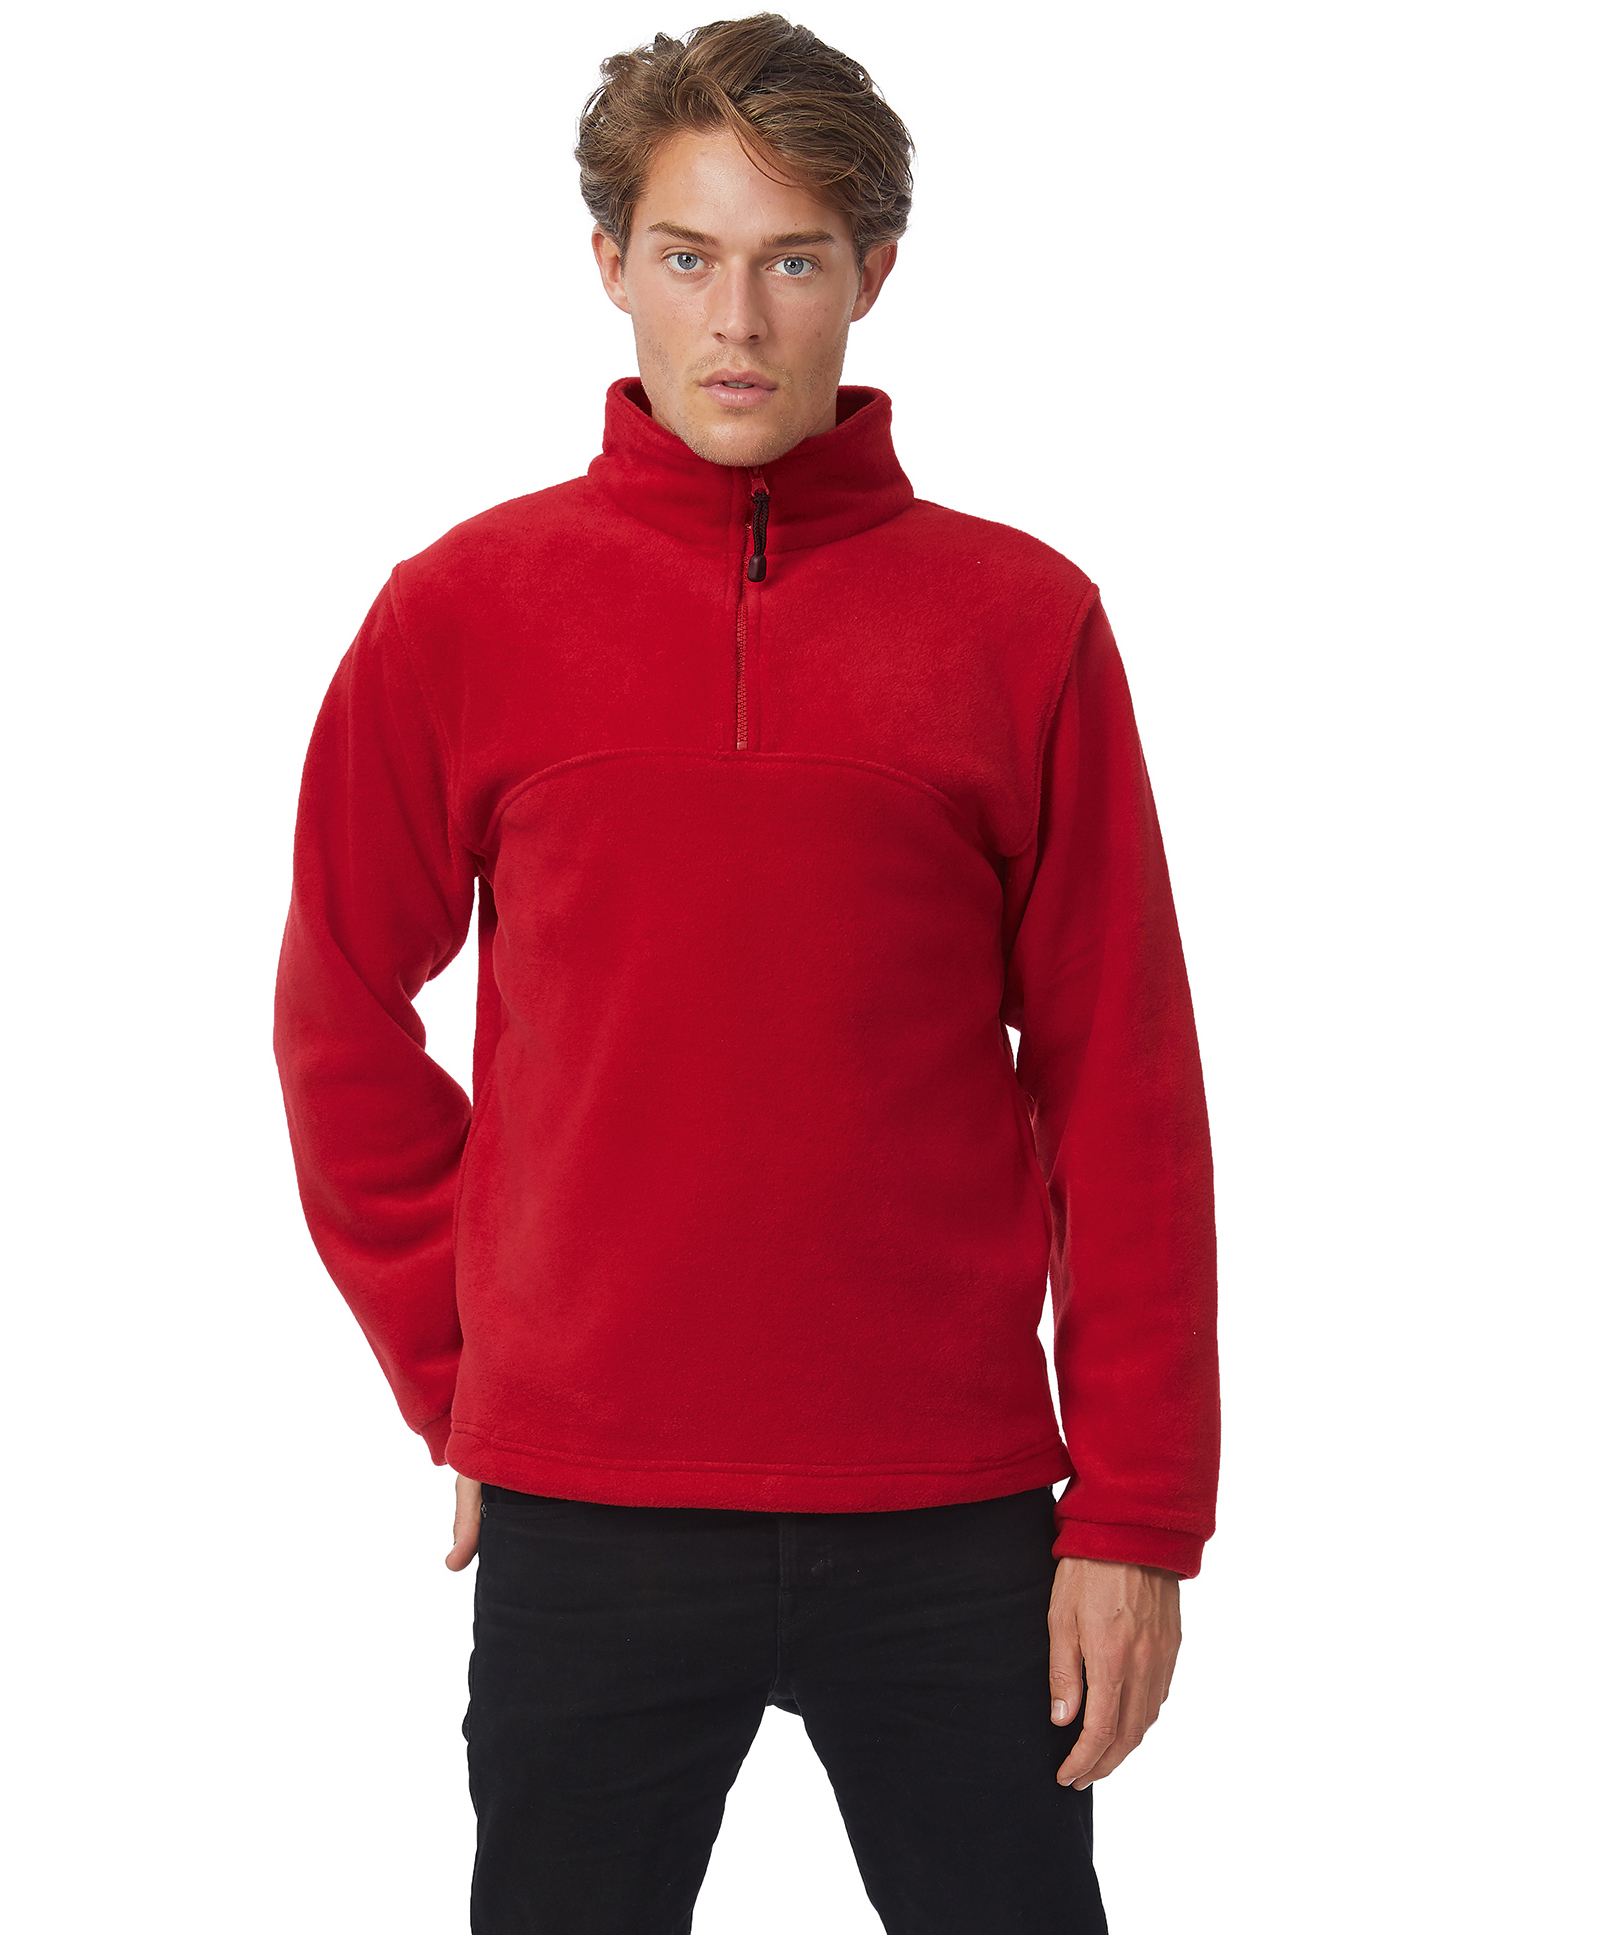 B&C: 1/4 Zip Fleece Top Highlander + FU704